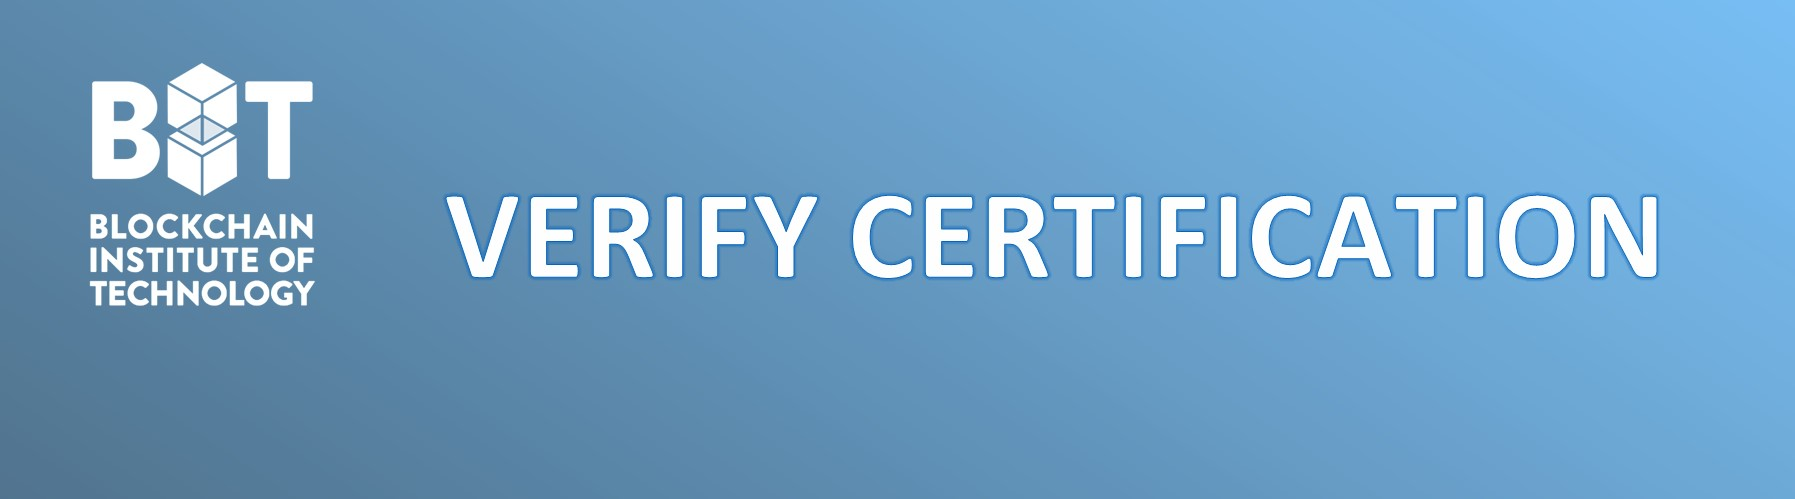 Verify BIT Certification